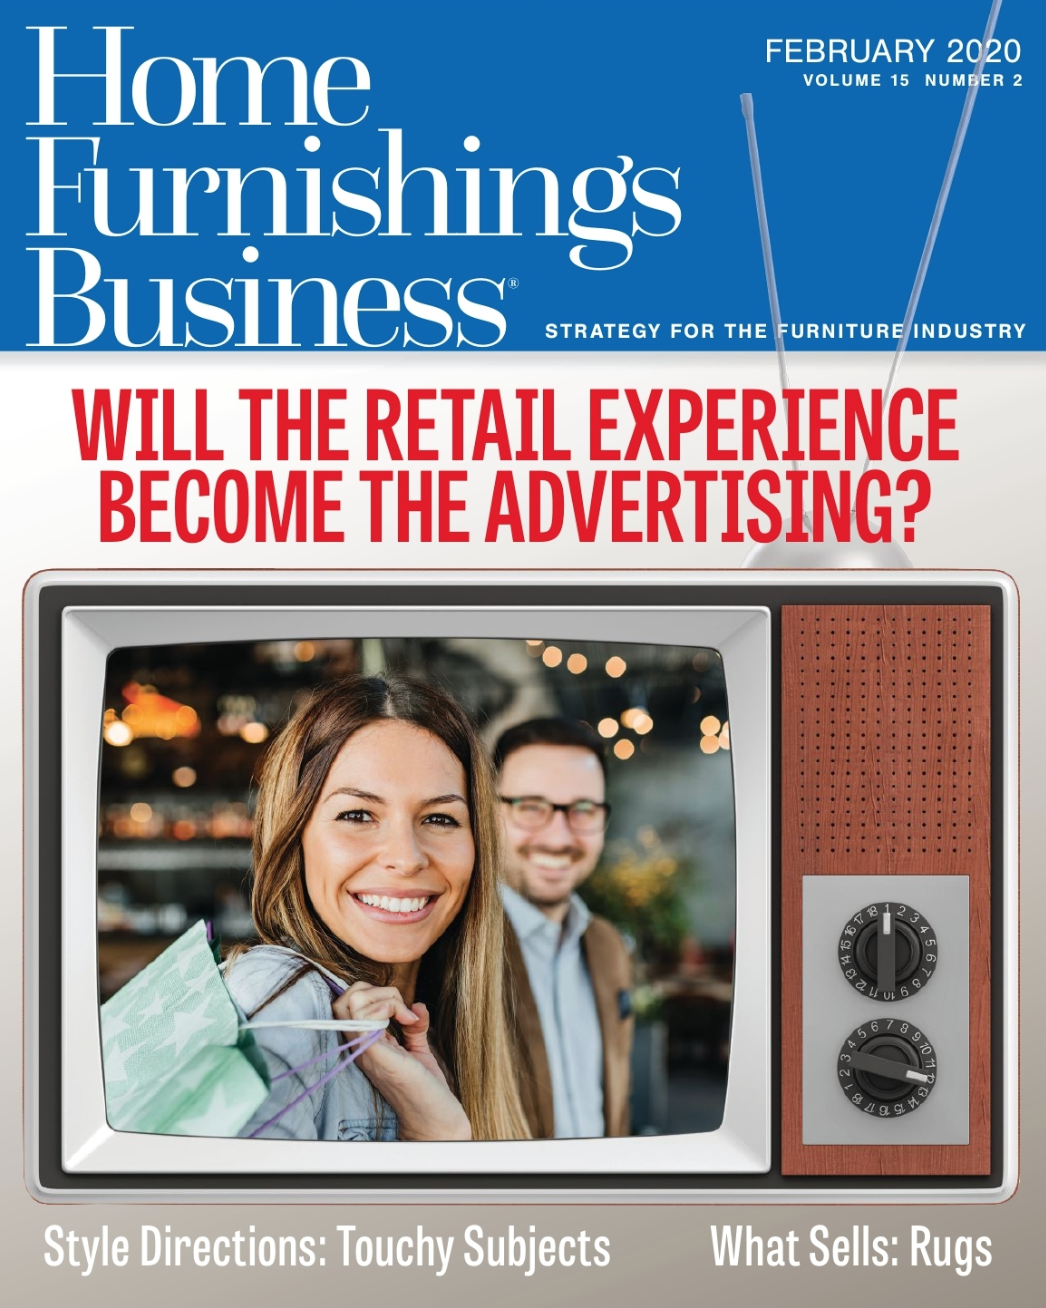 Home Furnishings Business February 2020 Magazine